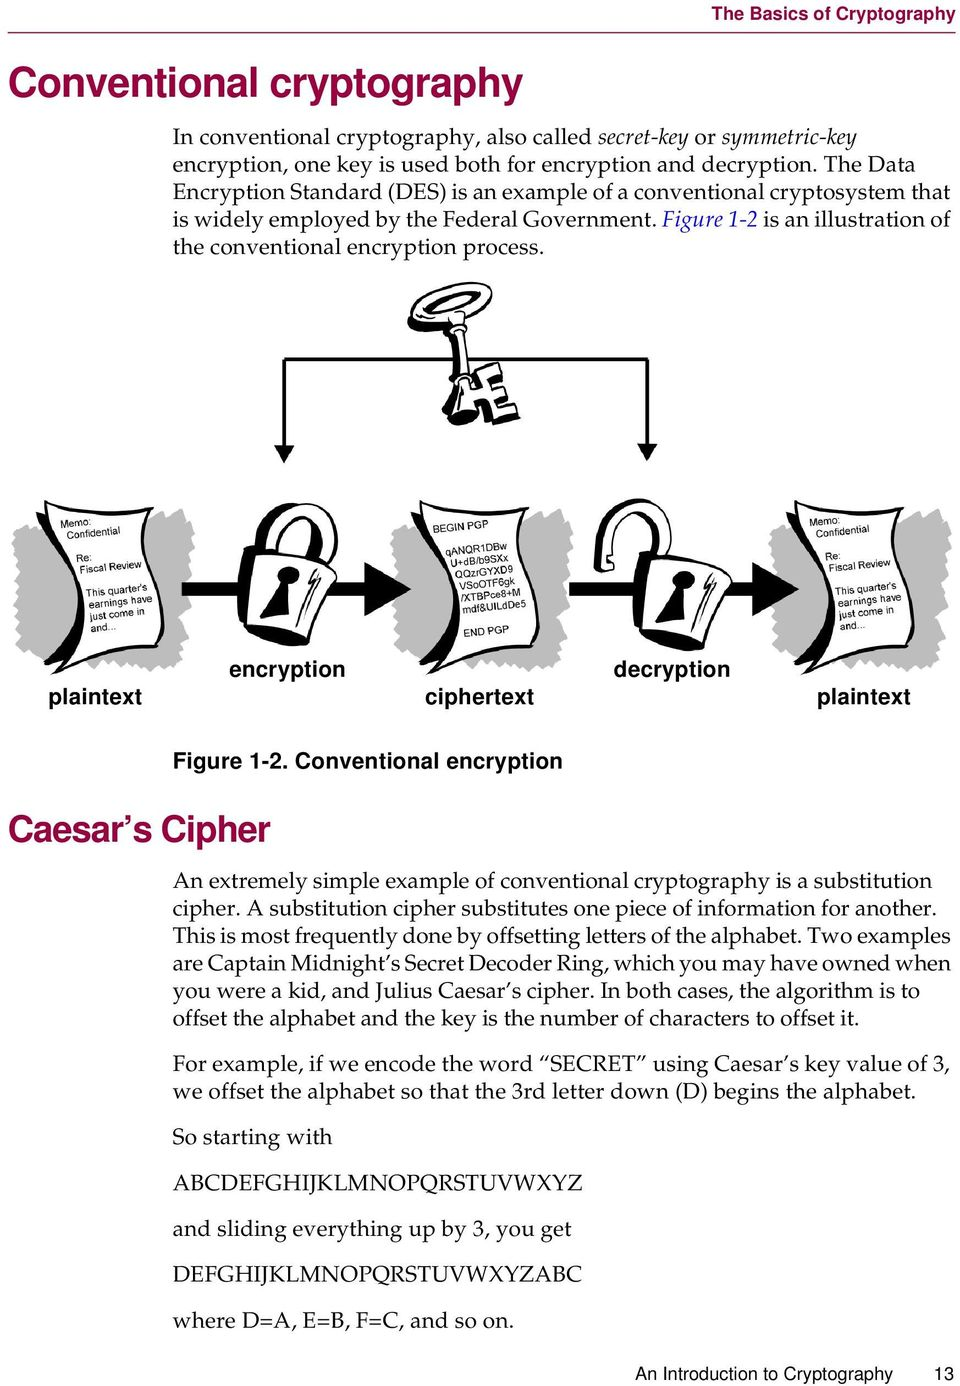 an introduction to cryptography Introduction to cryptography cryptography is the study of secret (crypto-) writing (-graphy)  concerned with developing algorithms which may be used to: conceal the context of some message from all except the sender and recipient (privacy or secrecy), and/or.